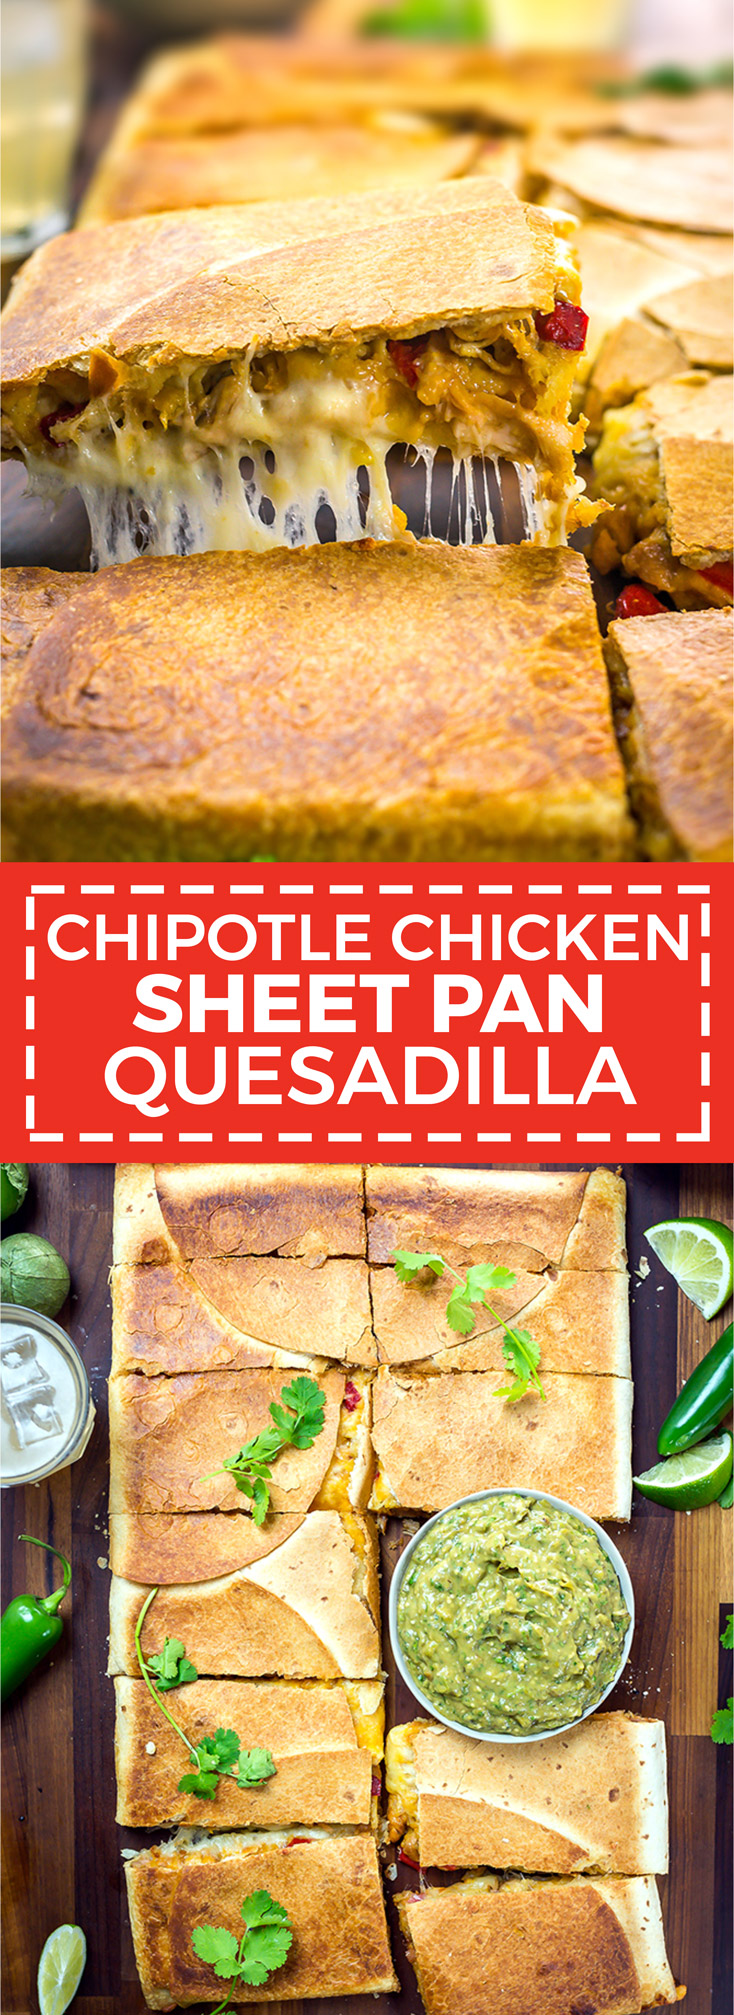 Chipotle Chicken Sheet Pan Quesadilla with Avocado Salsa Verde. This is how you make Mexican appetizers for a crowd. Cheesy, meaty, smoky, and oh-so-cheesy. | hostthetoast.com